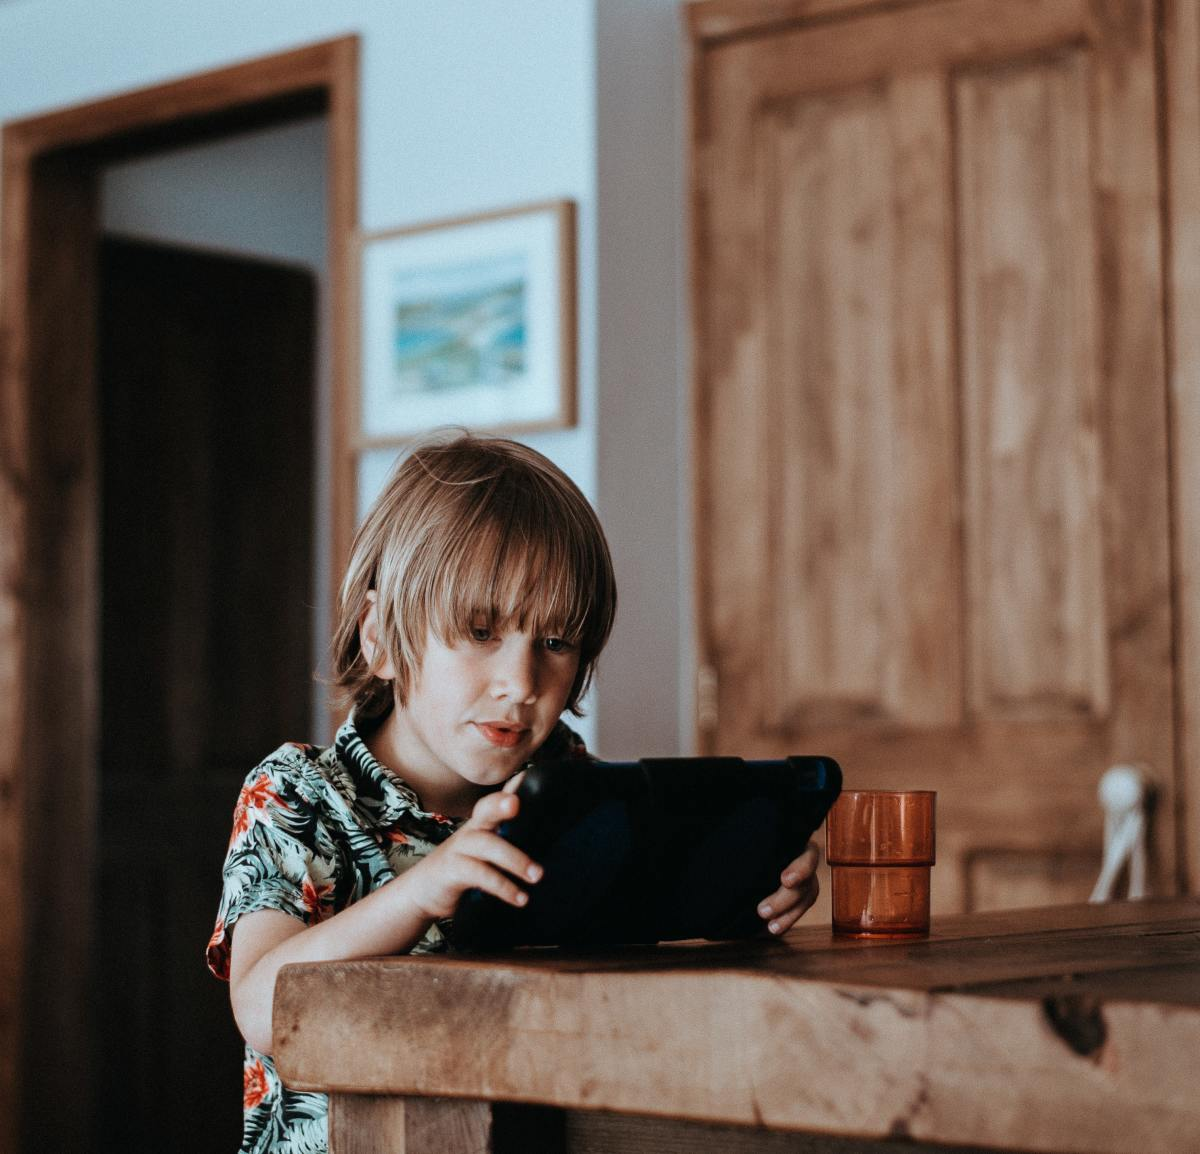 Boy using tablet computer.